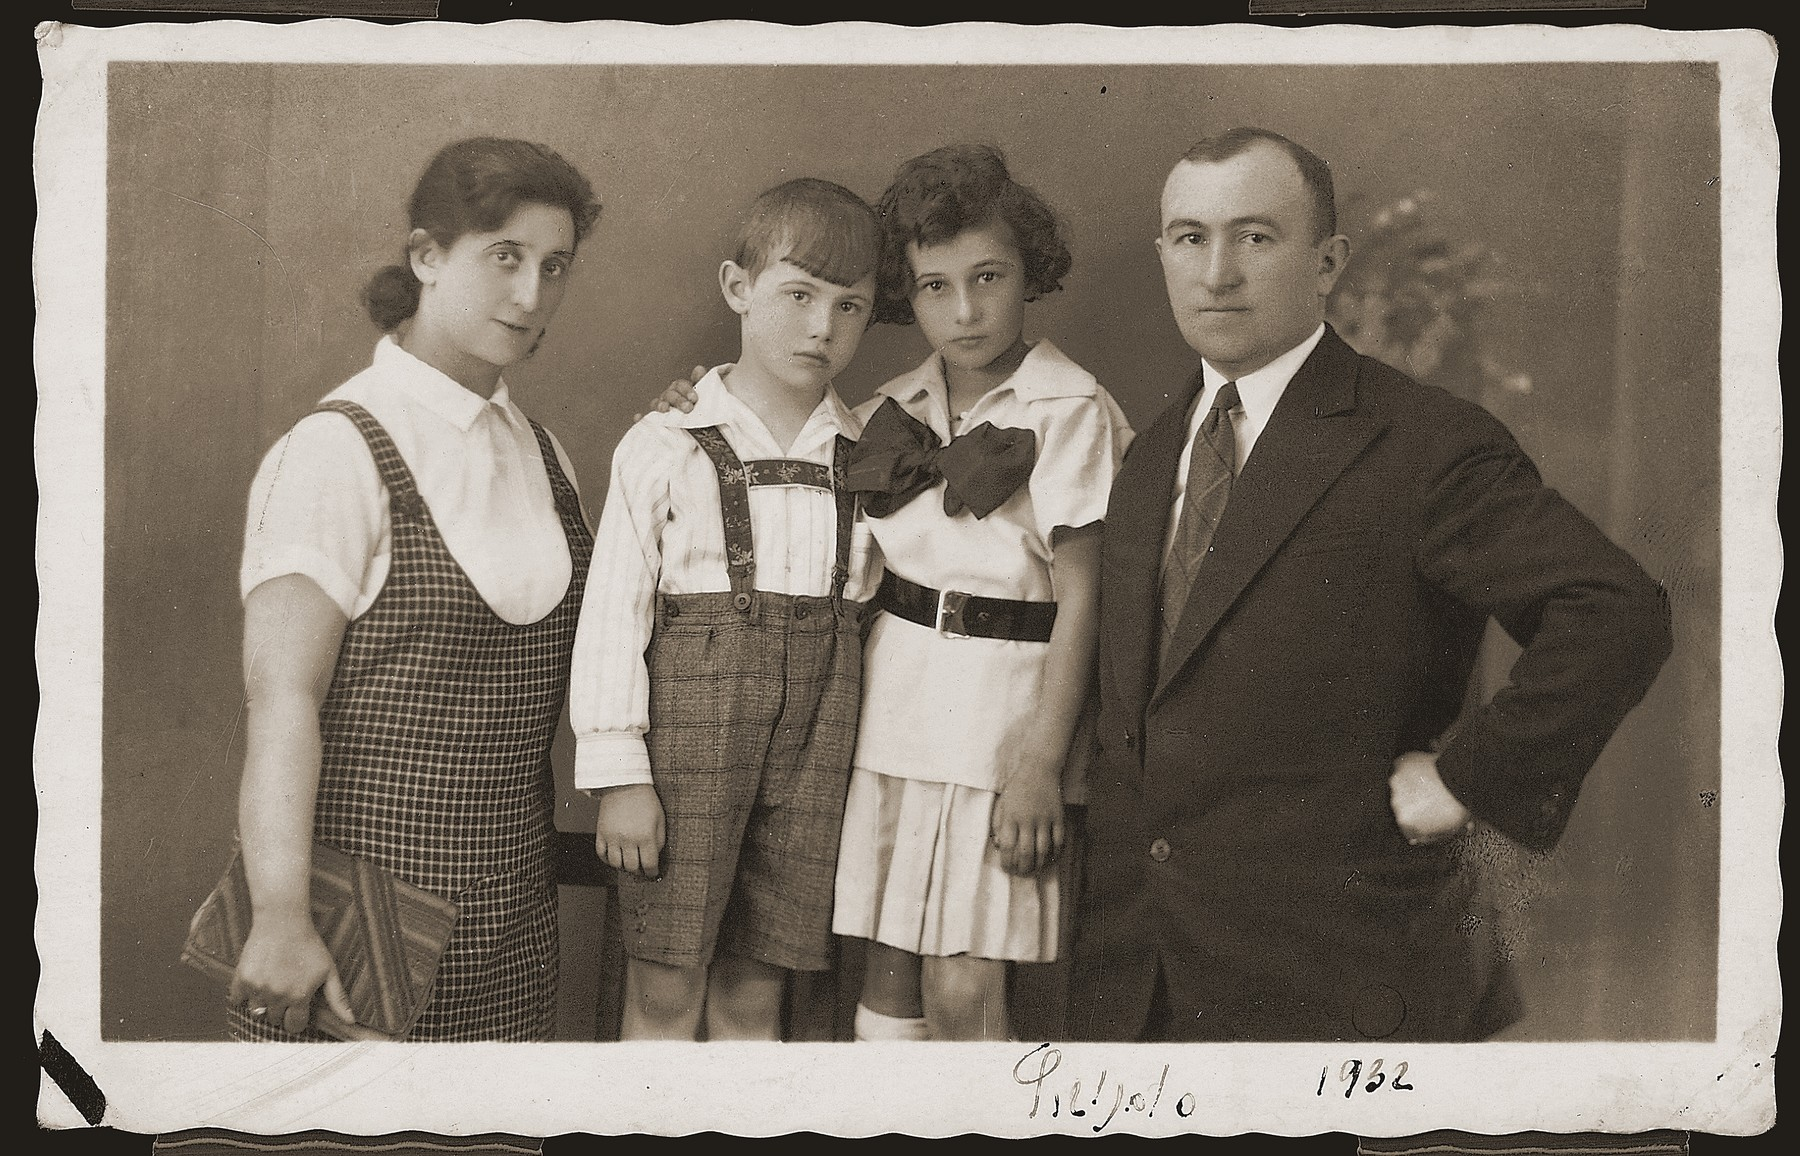 Studio portrait of the Szpira family in Sosnowiec, Poland.  Pictured are Aron and Estusia (Szwajcer) Szpira and their two children.